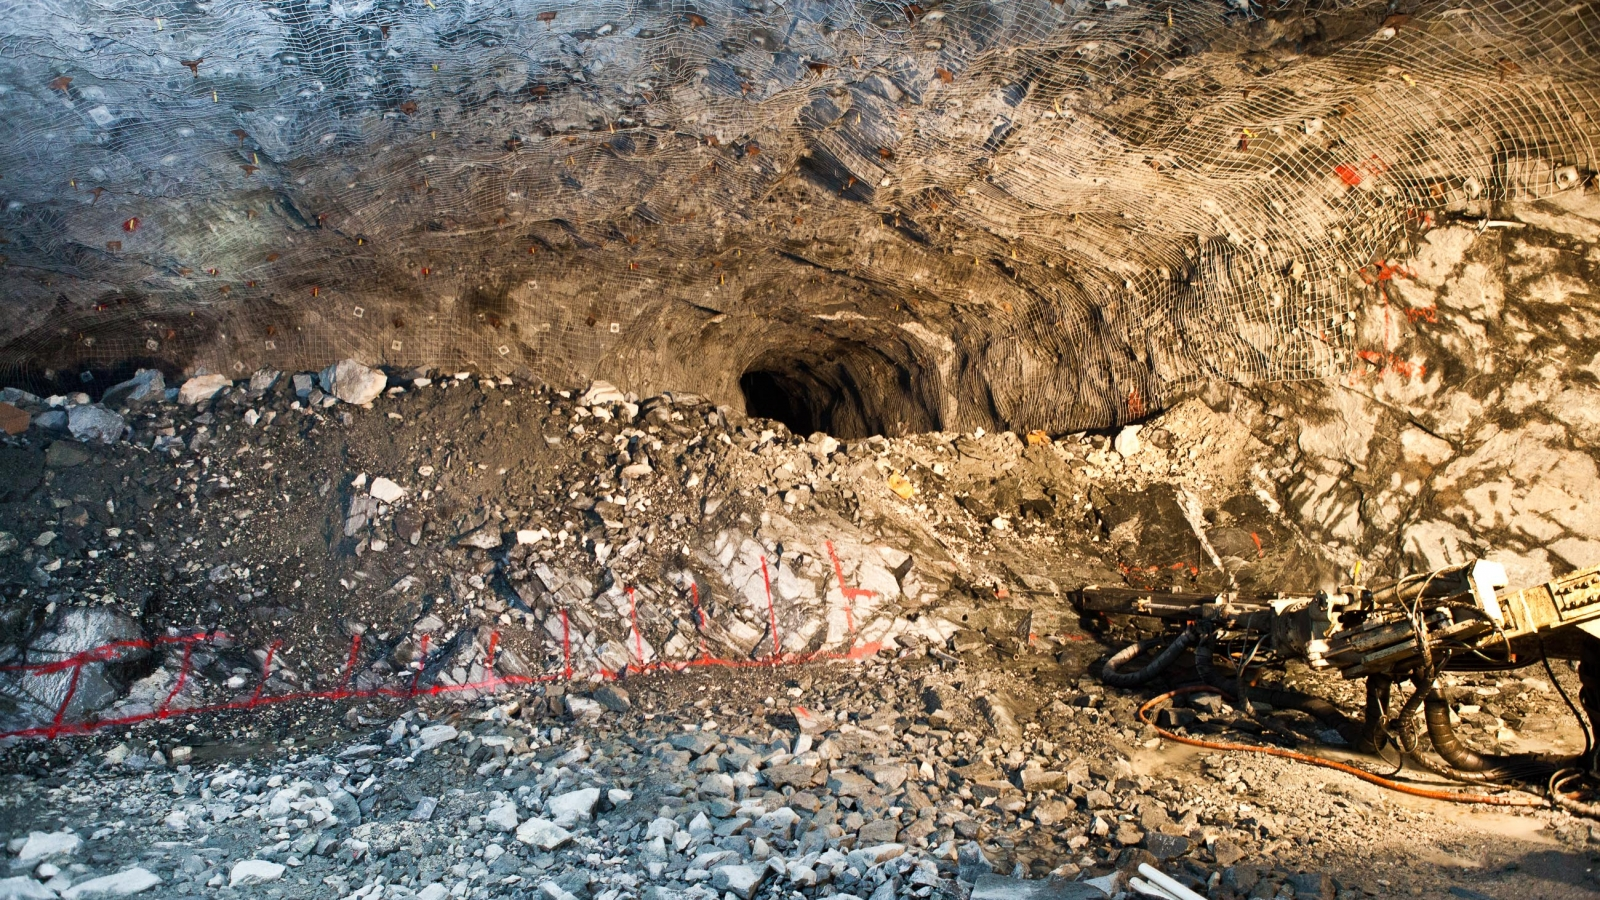 A new cavern in the middle of excavating.